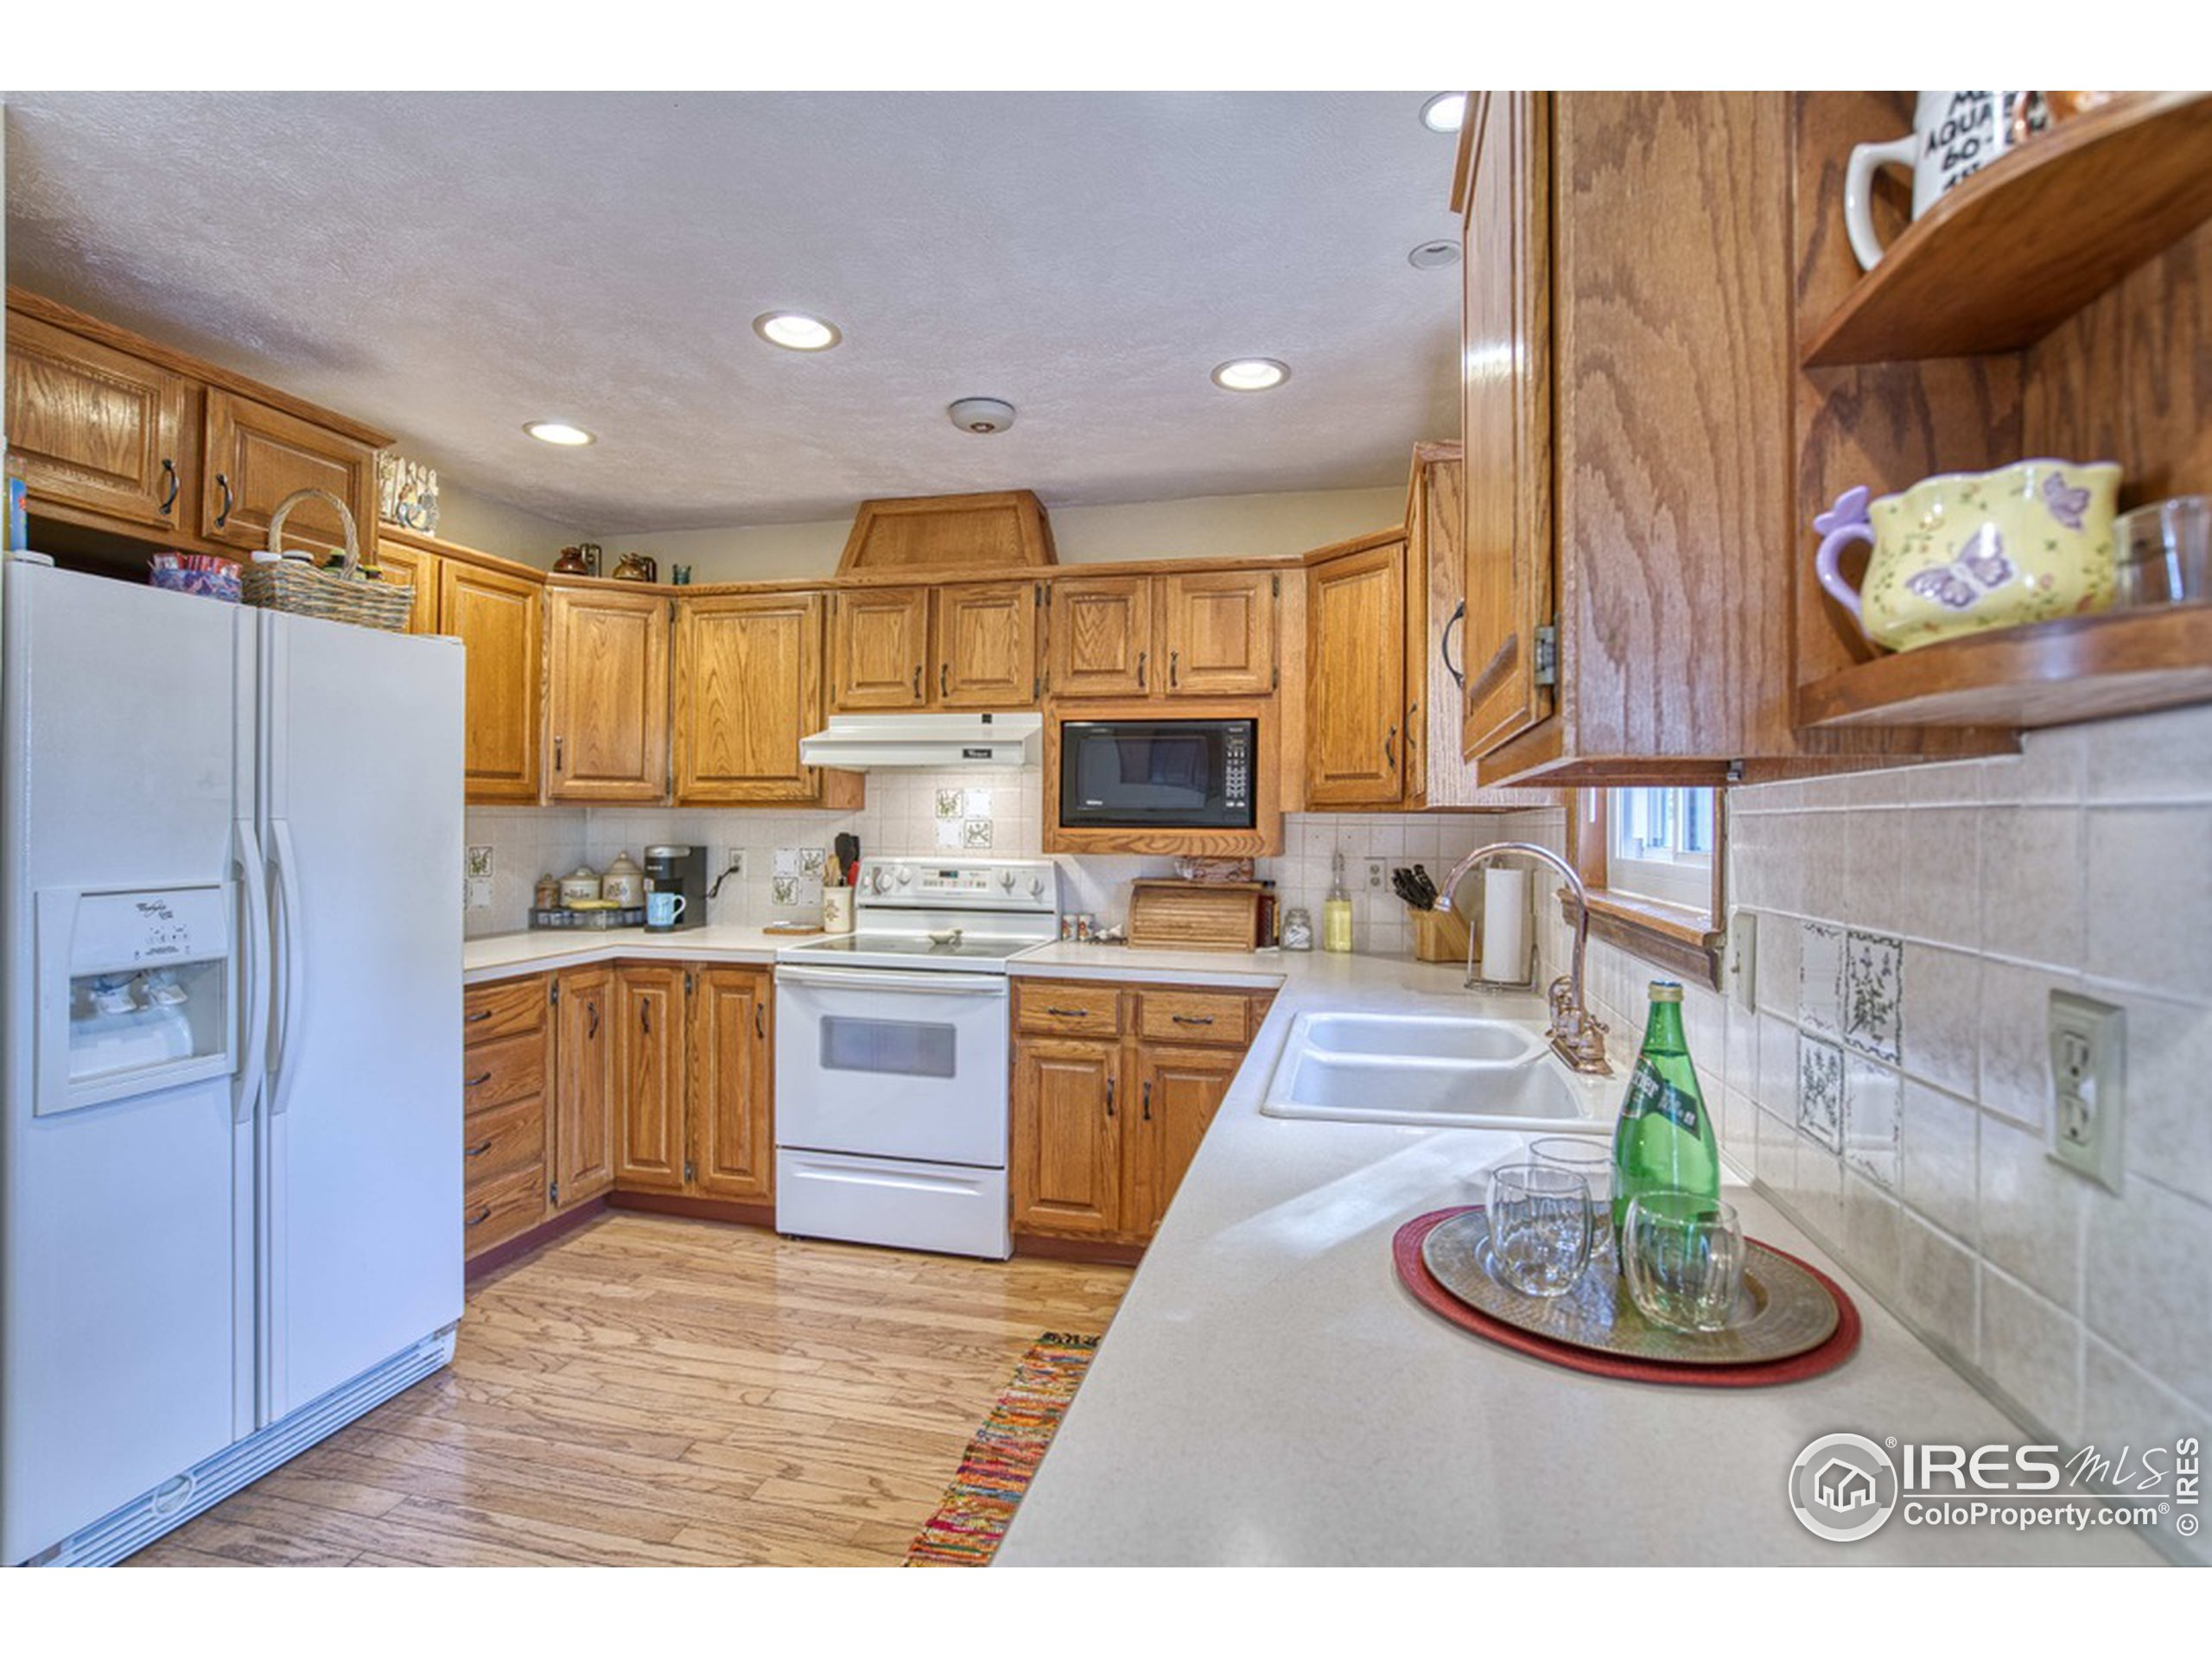 Kitchen with all Appliances Included